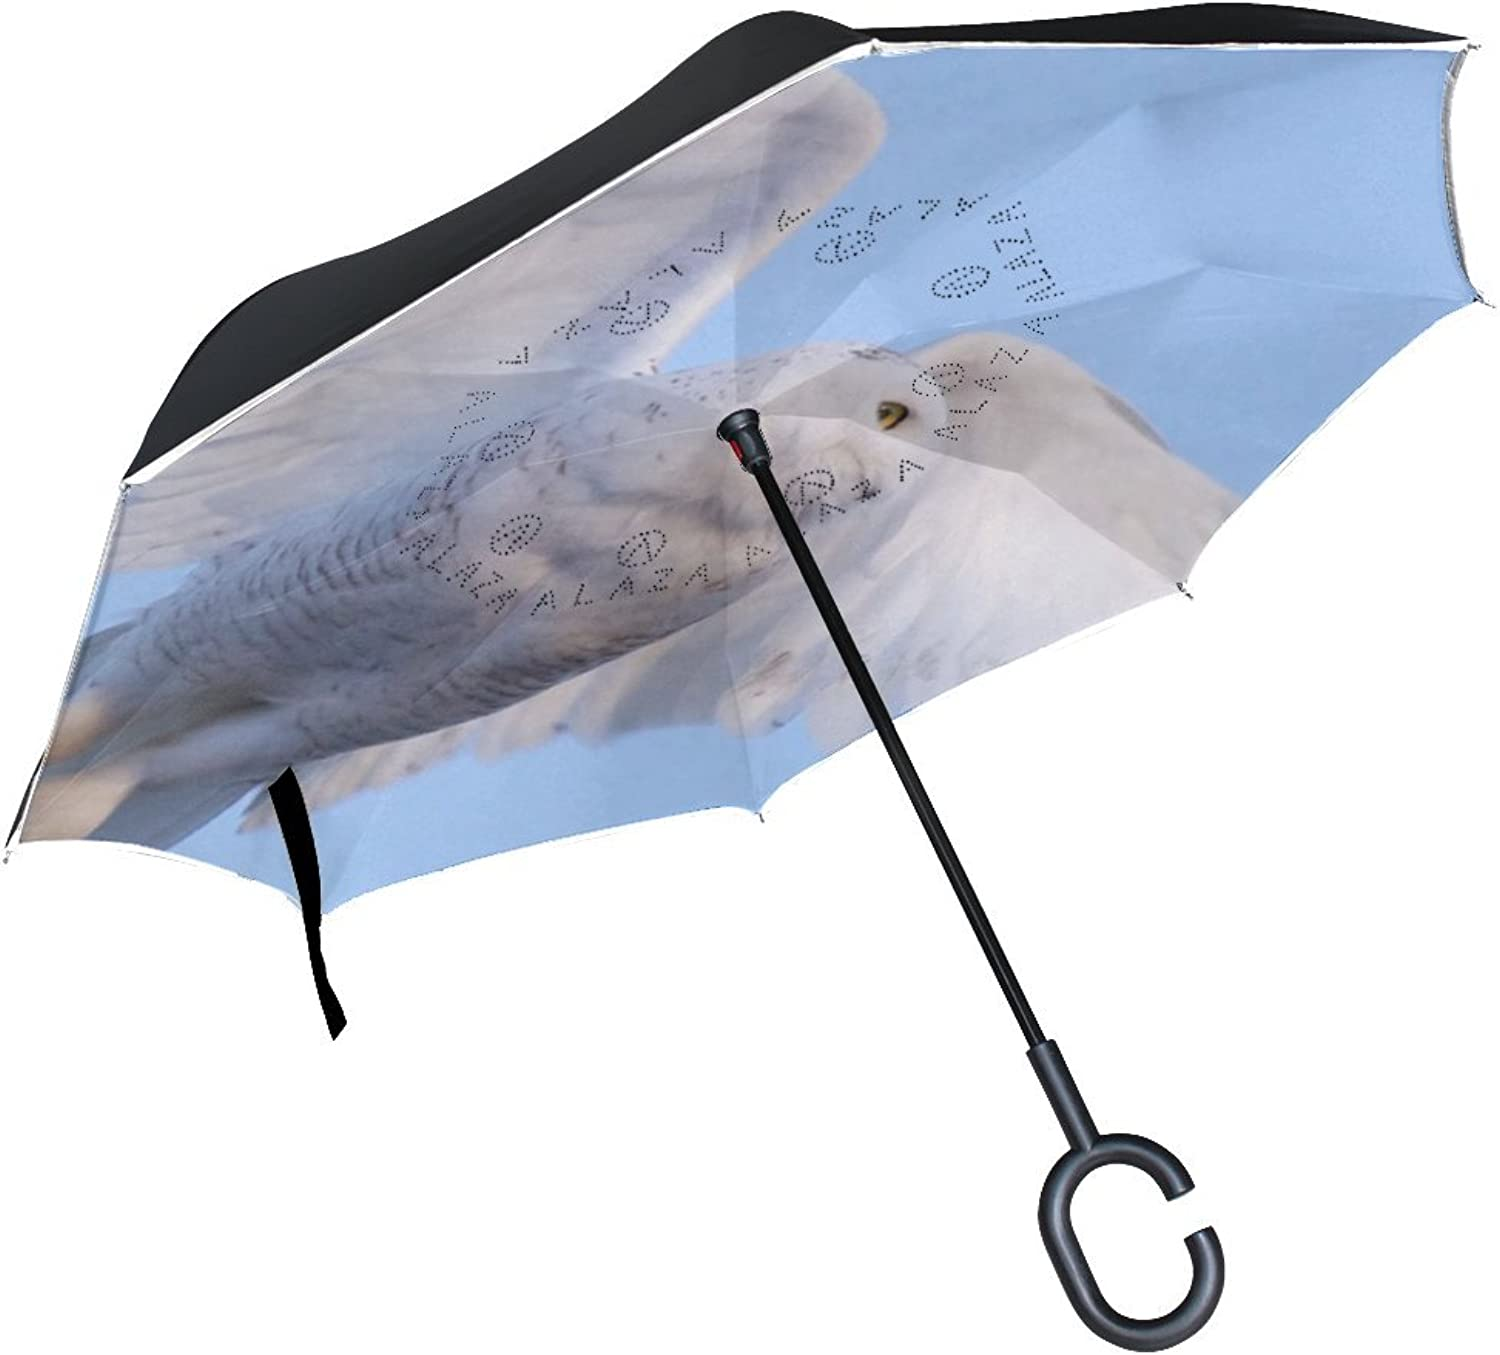 Animal Owl Snowy Adorable Fluffy Small Animated Flying White Ingreened Umbrella Large Double Layer Outdoor Rain Sun Car Reversible Umbrella